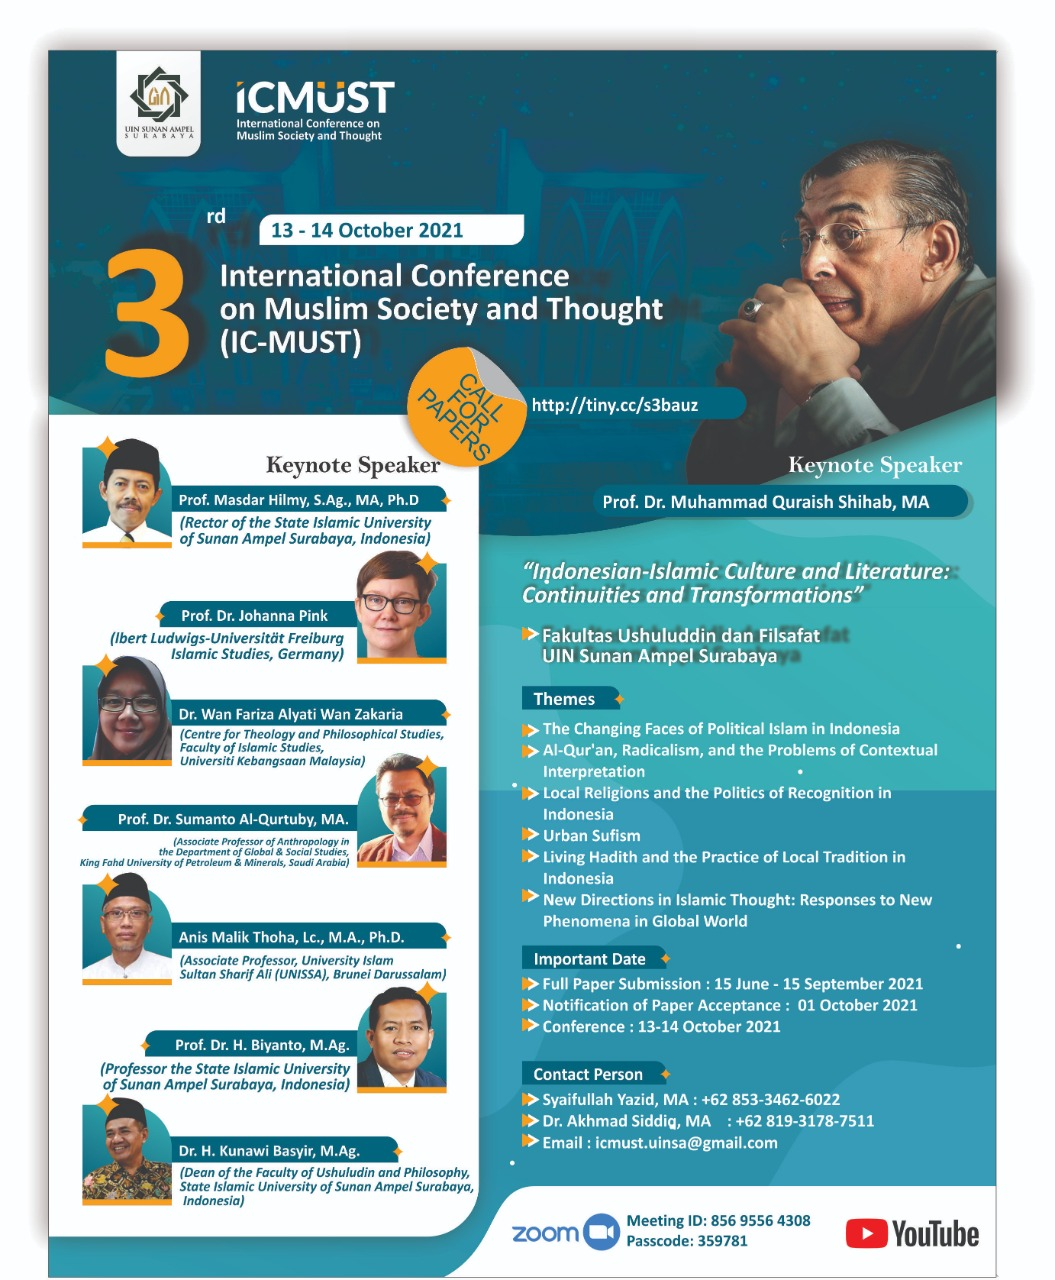 The 3rd International Conference on Muslim Society and Thought (IC-MUST)